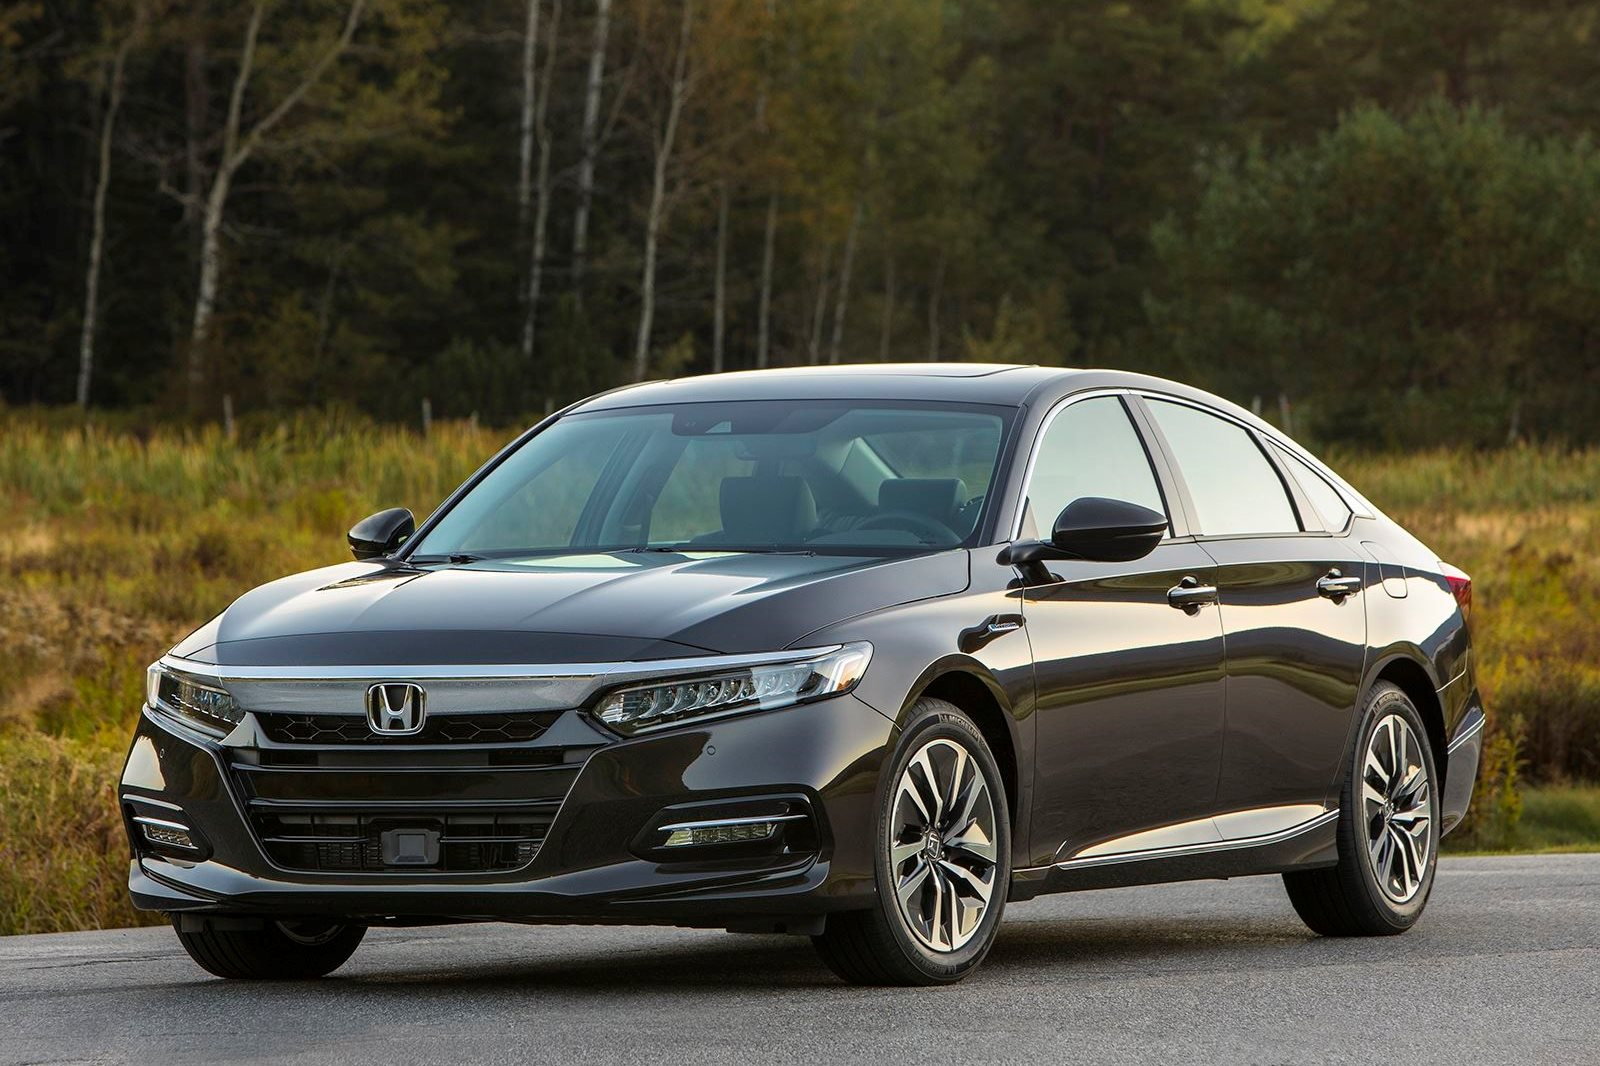 The Honda Accord Hybrid: Will it survive the crossover onslaught?